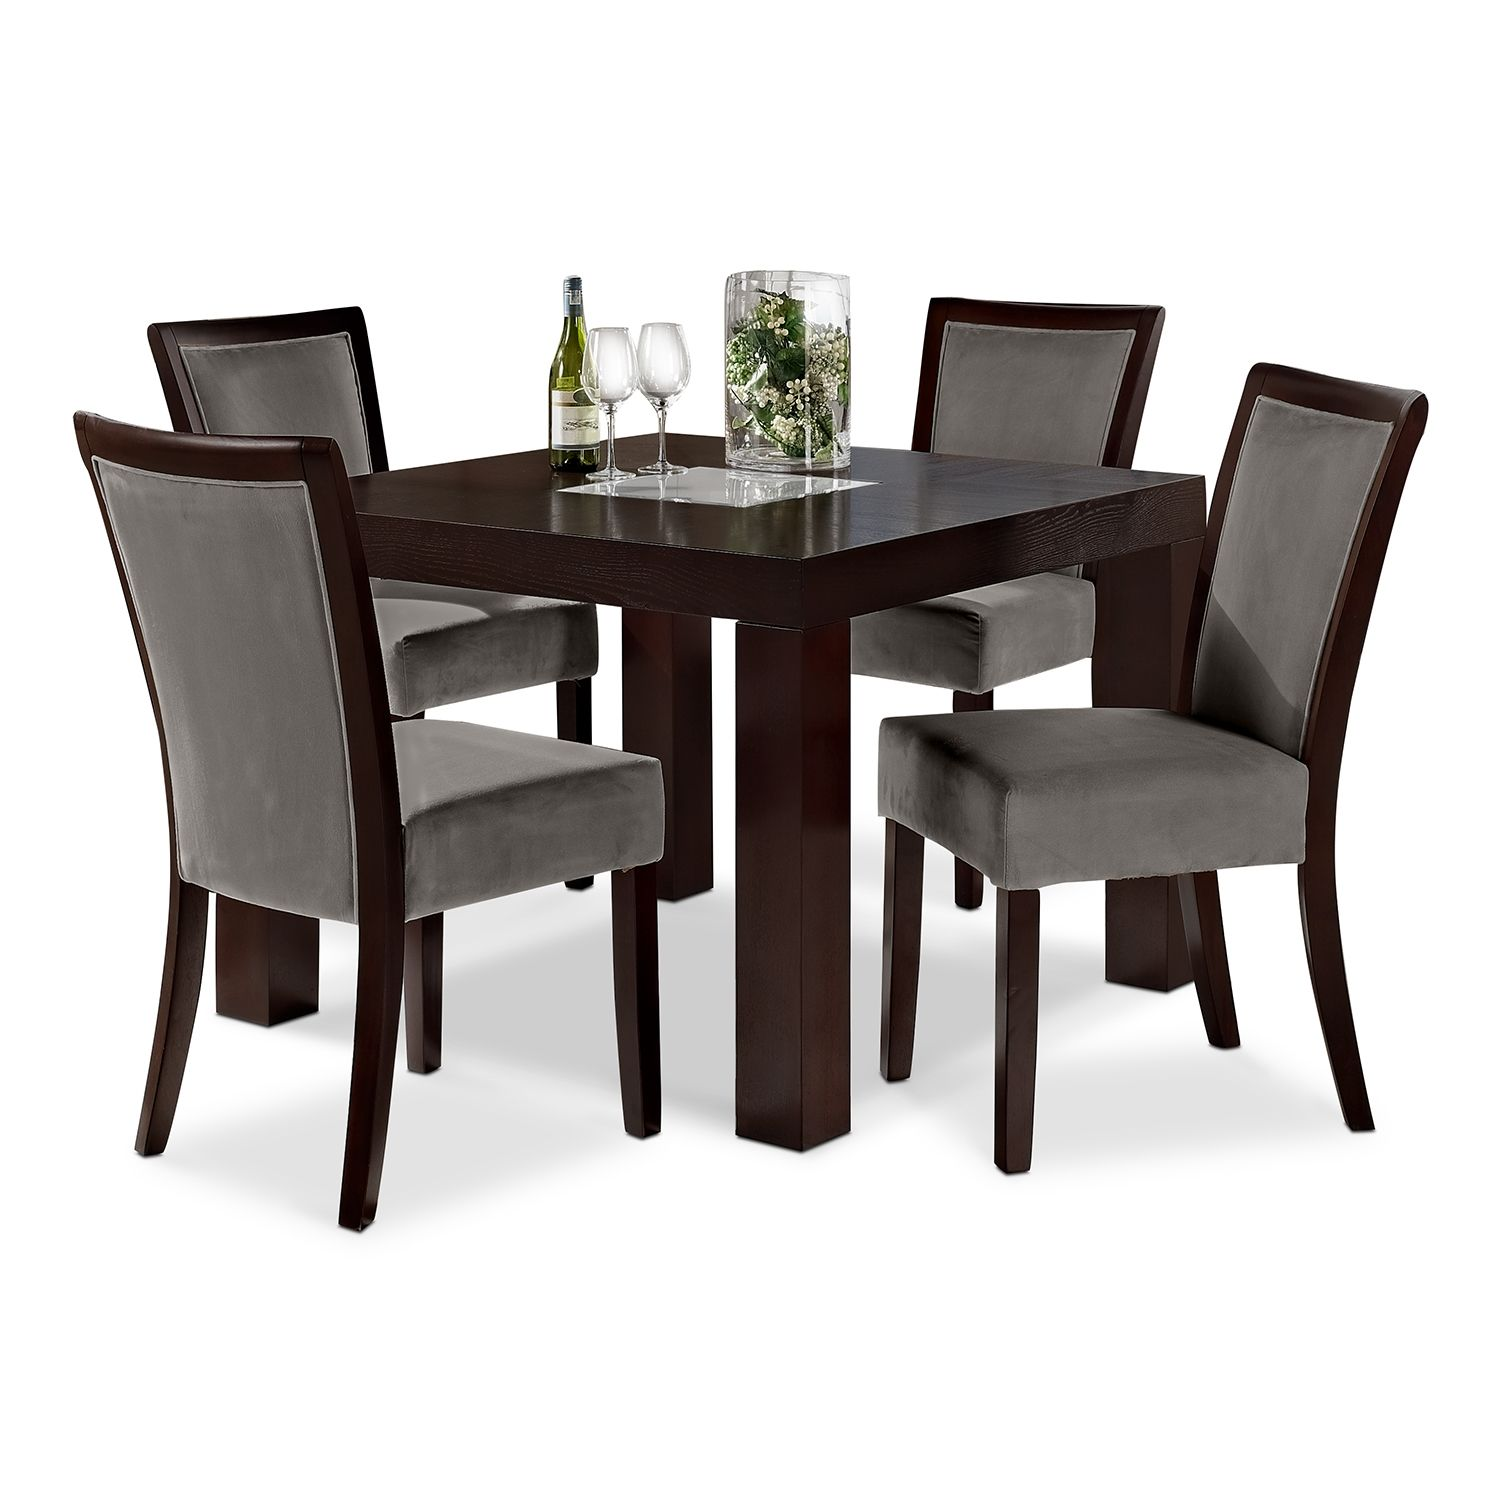 "Tango Gray 5 Pc Dinette 42"" Table Value City Furniture"